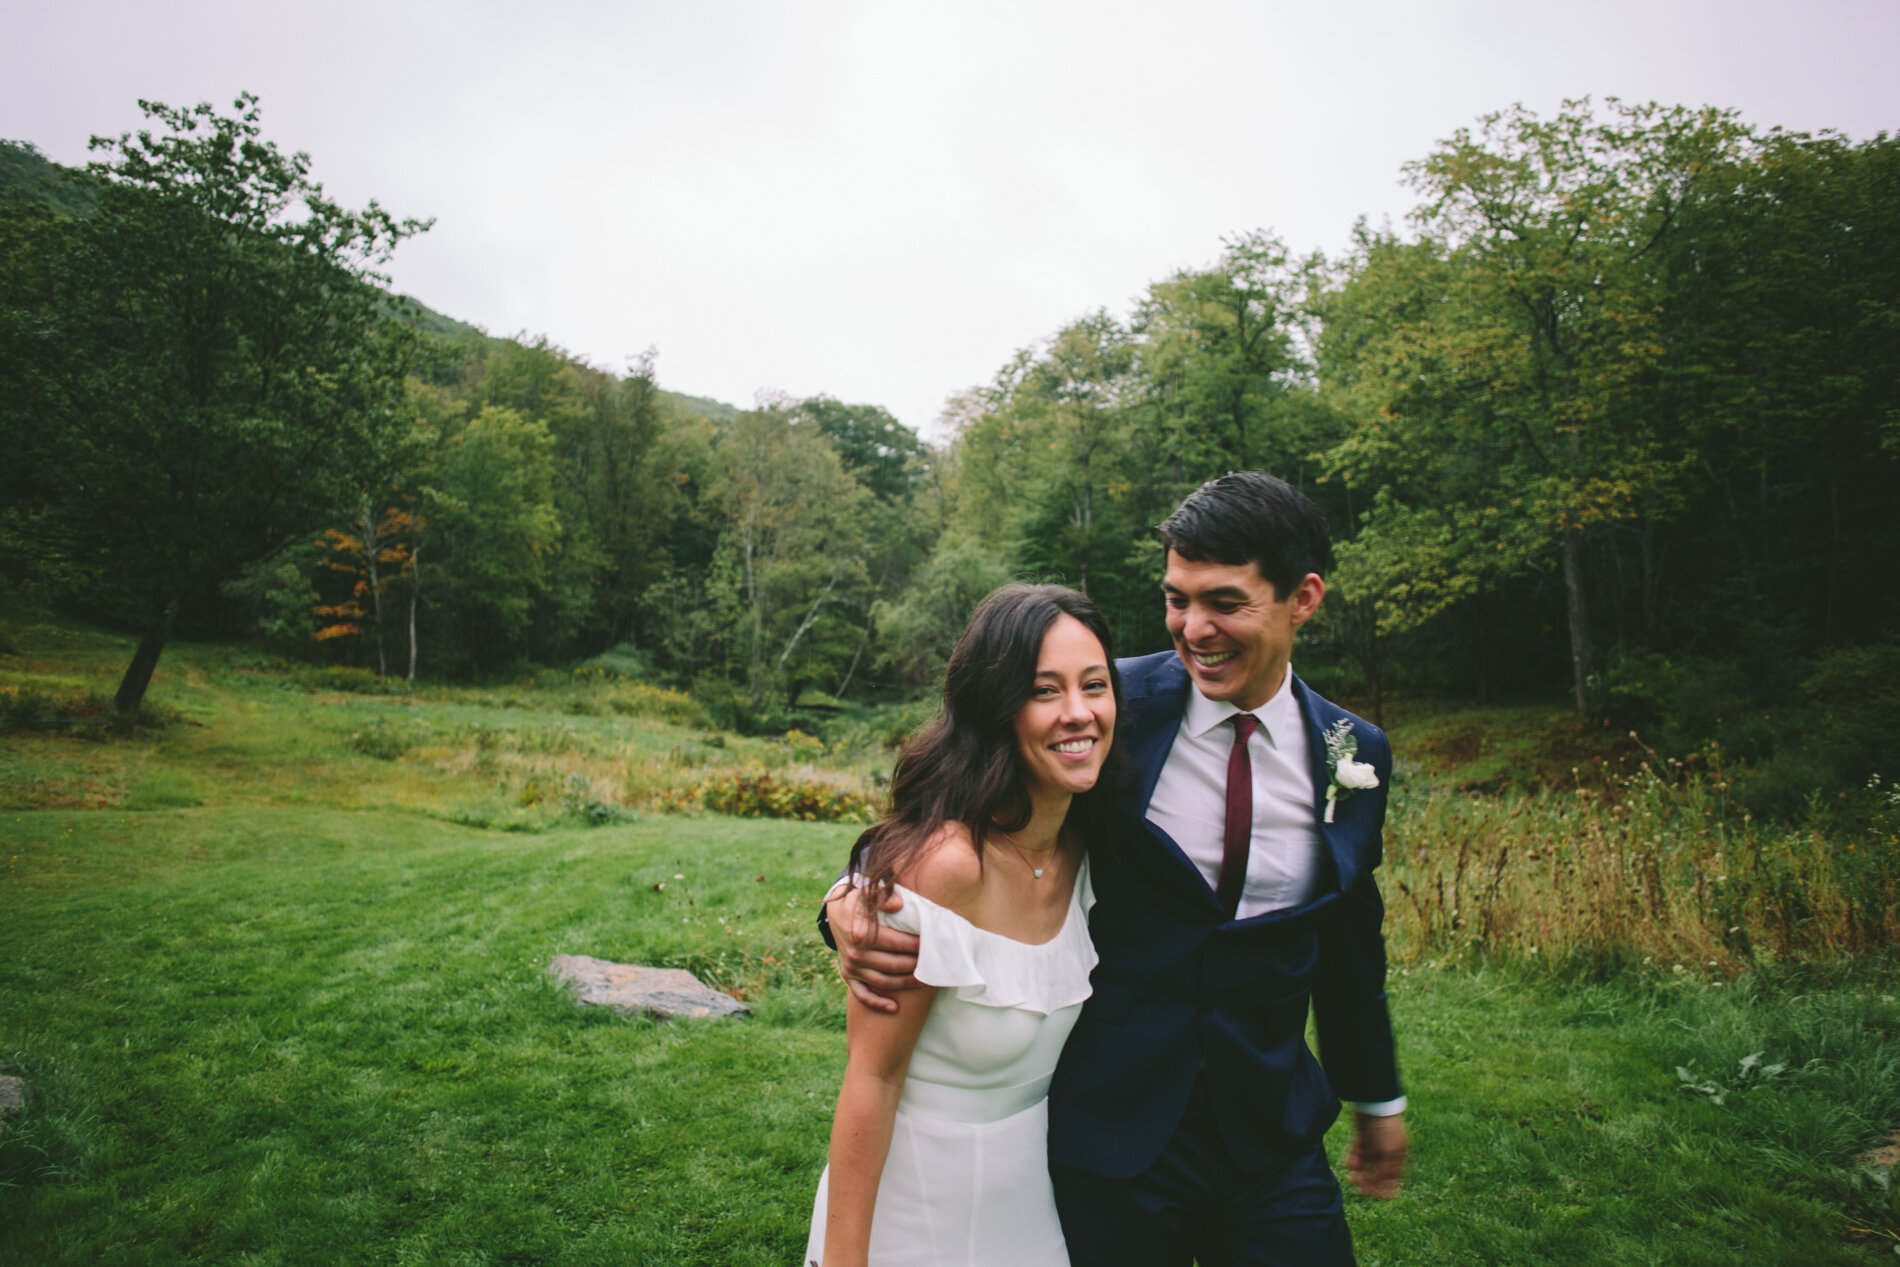 Berkshire Farm Wedding-111.jpg